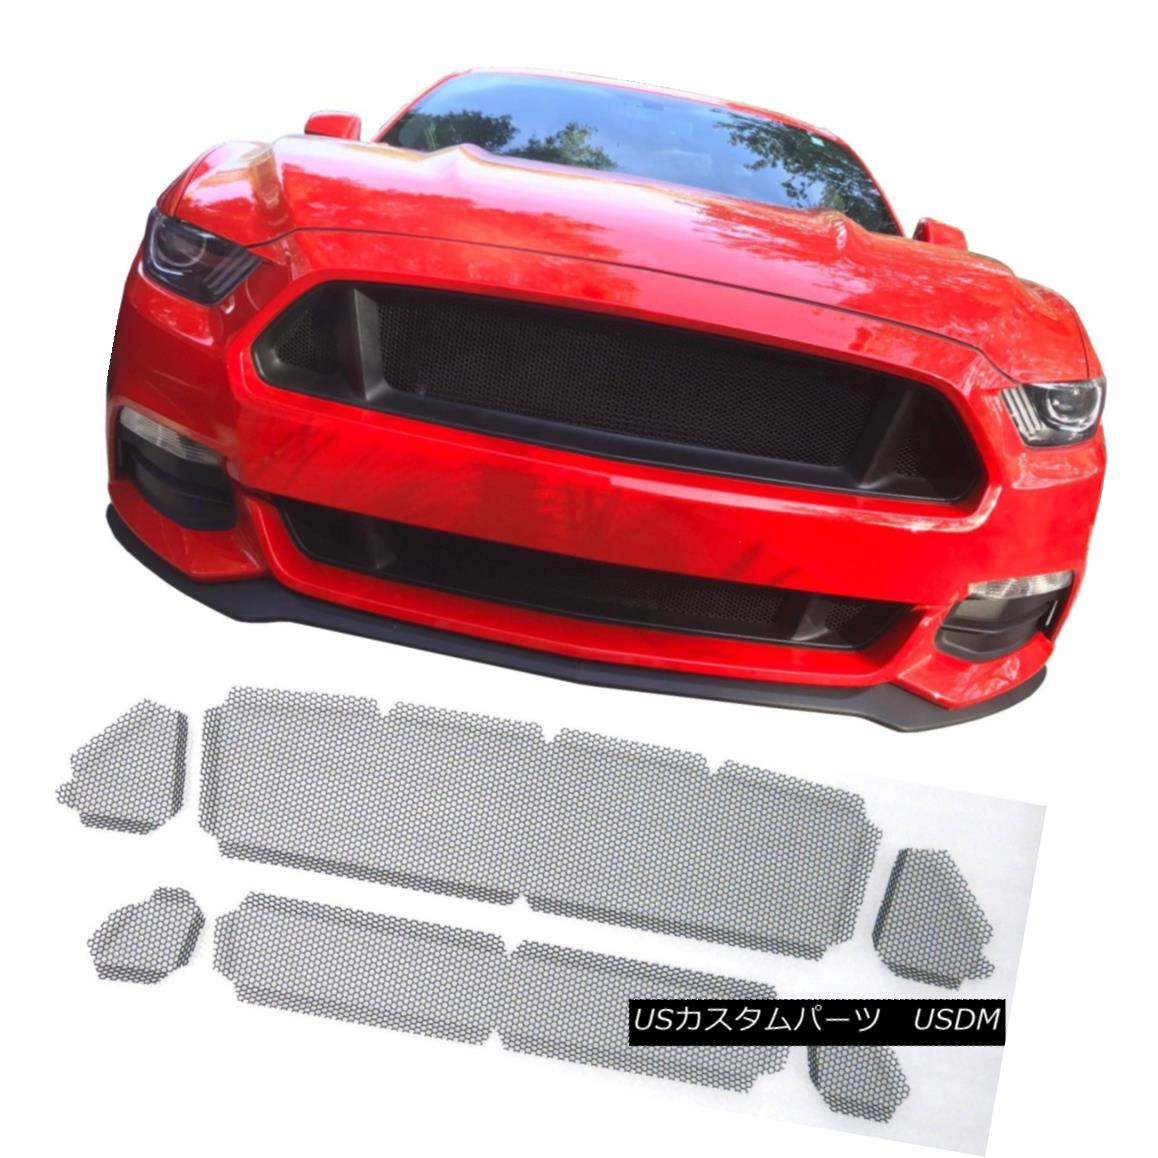 USグリル CCG GLOSS BLACK GRILL GRILLE DELETE MESH INSERT KIT FOR 2015-17 FORD MUSTANG GT CCGグロスブラックグリルグリル2015-17 FORD MUSTANG GT用メッシュインサートキットを削除